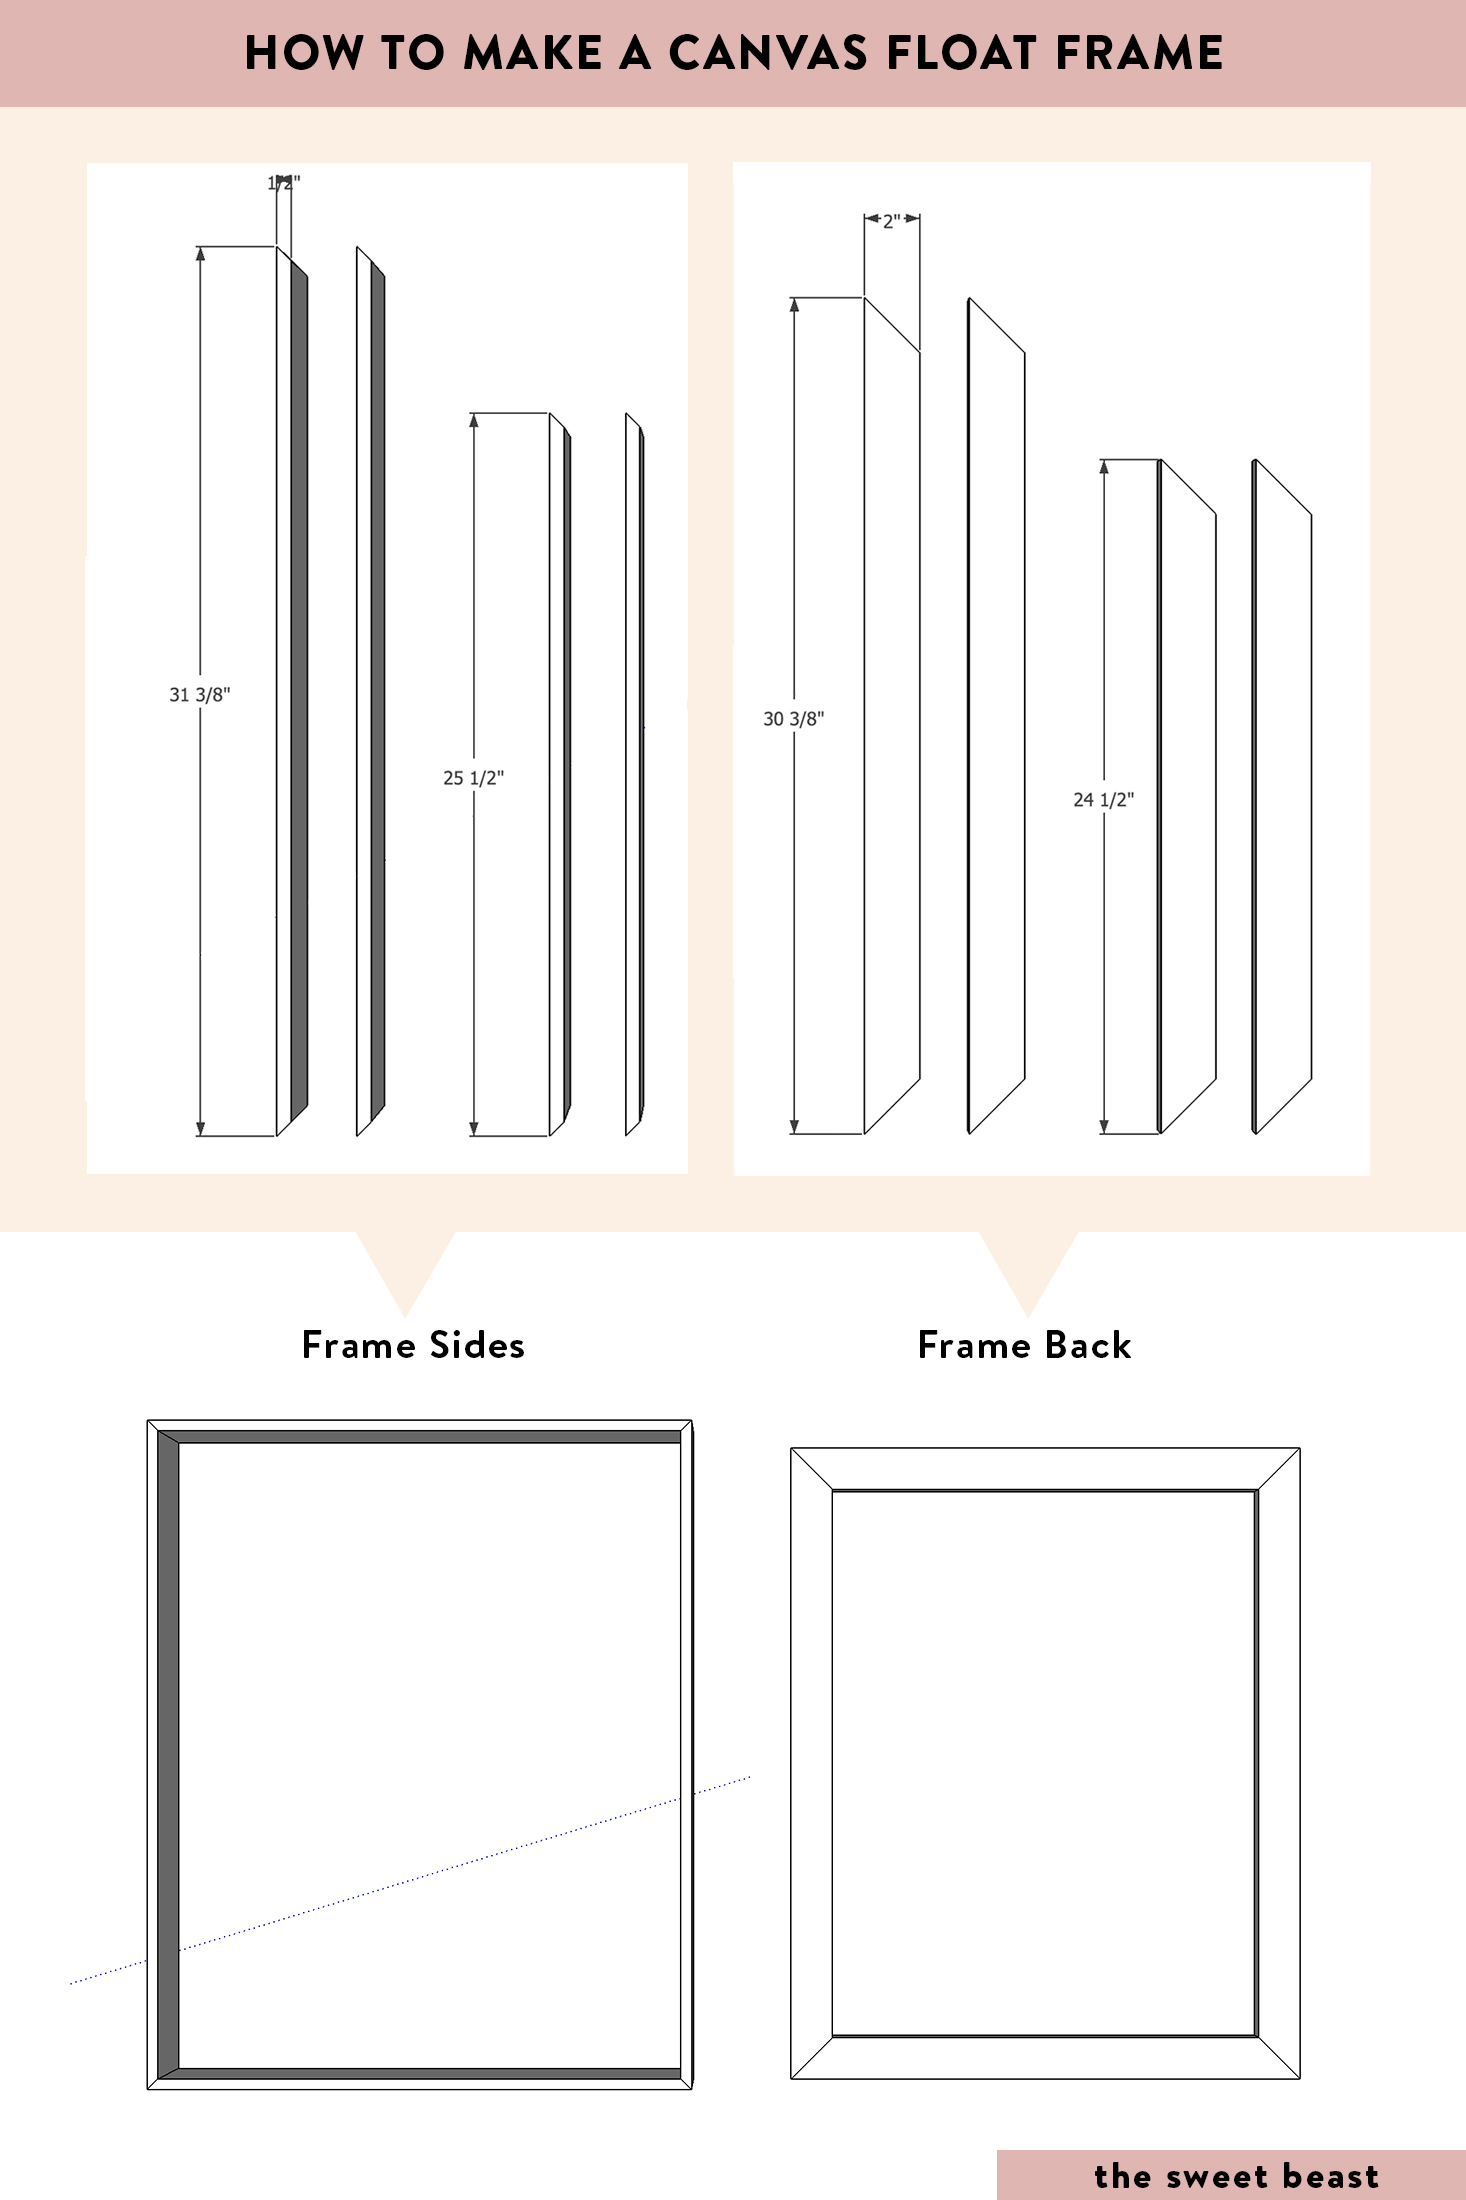 How to Make a Canvas Float Frame